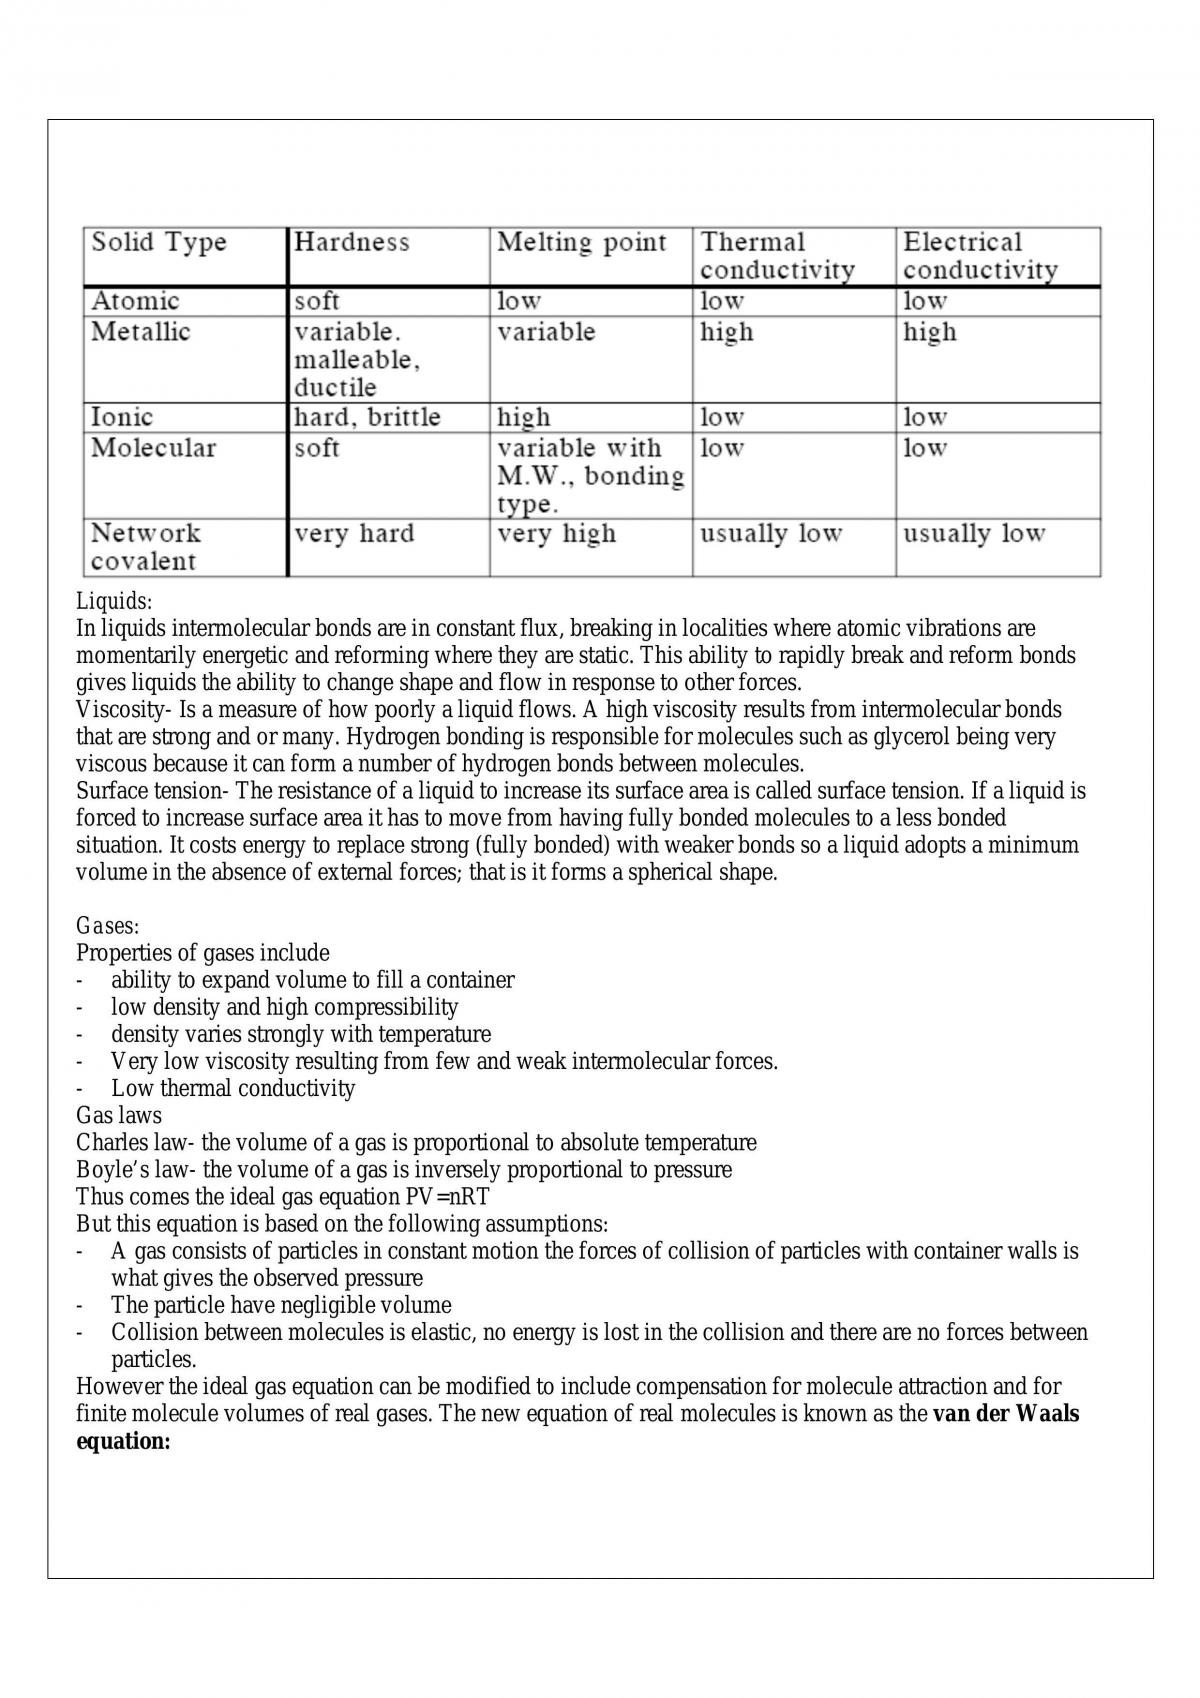 Chemistry-Chem1021 Summaries Up To And Including Equilibrium (About 1St Half Of The Course),  Got 85 Hd. - Page 13